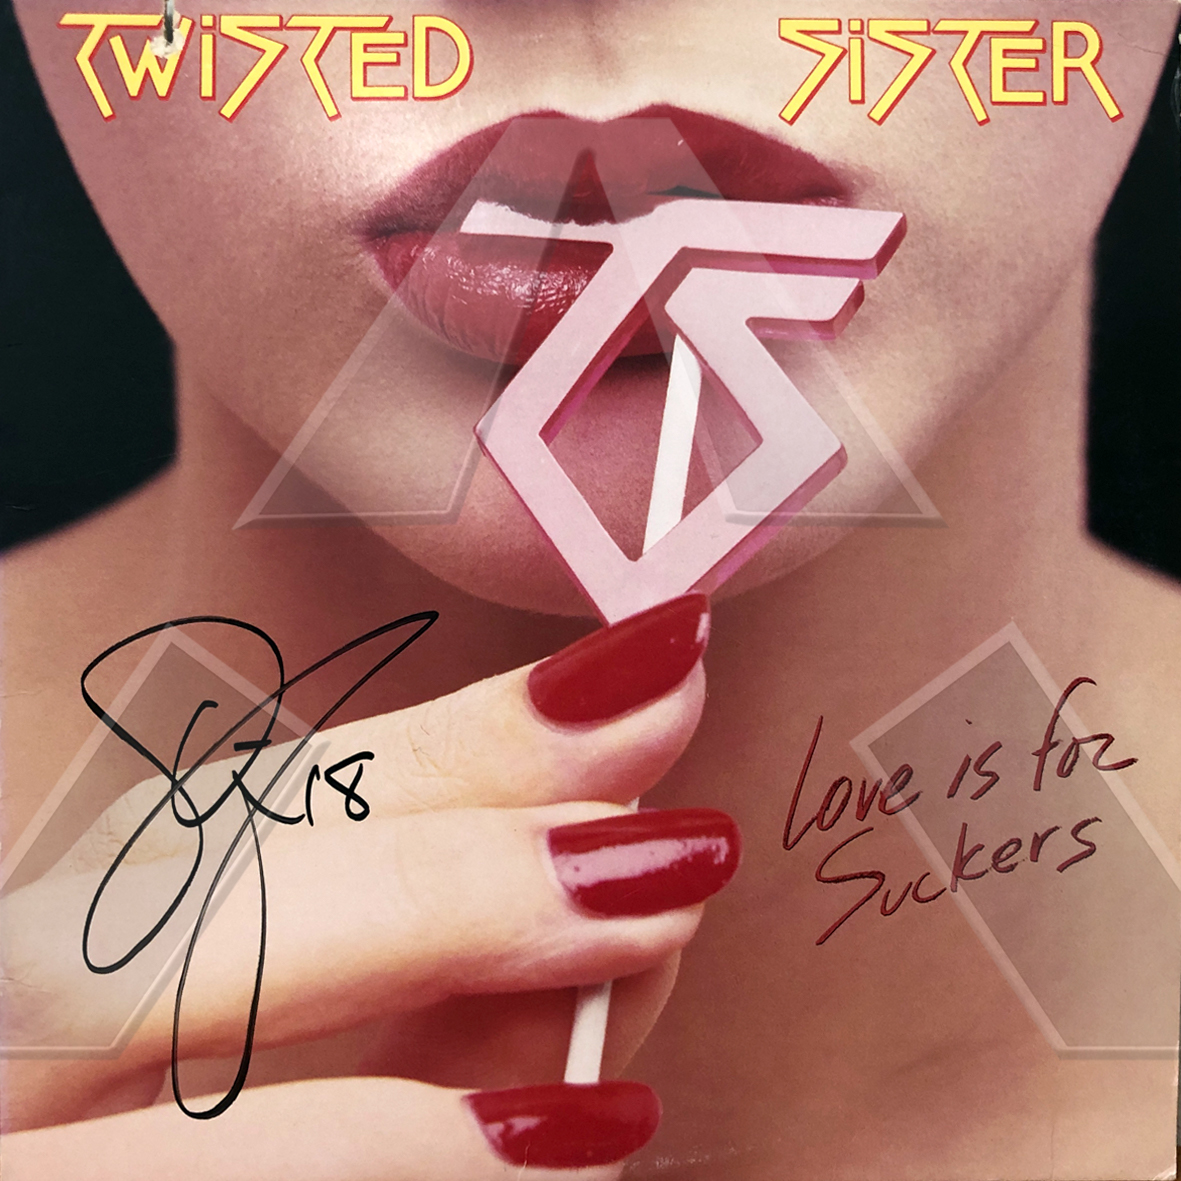 Twisted Sisters ★ Love is for Suckers (vinyl album US signed)